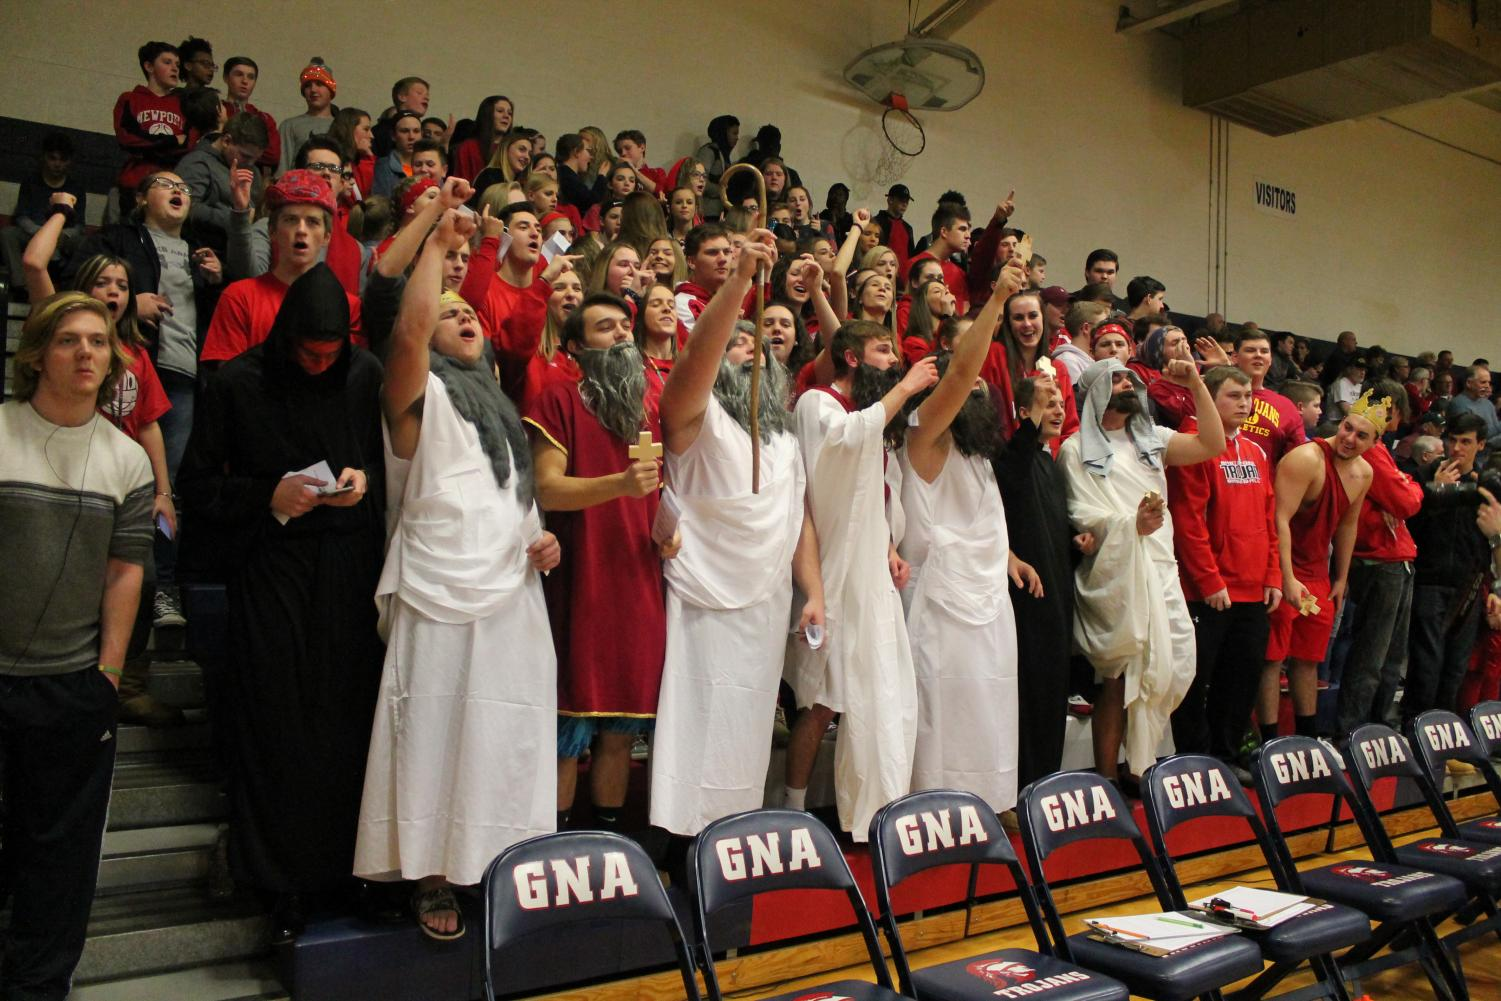 The Jungle comes out with a Red Sea theme.